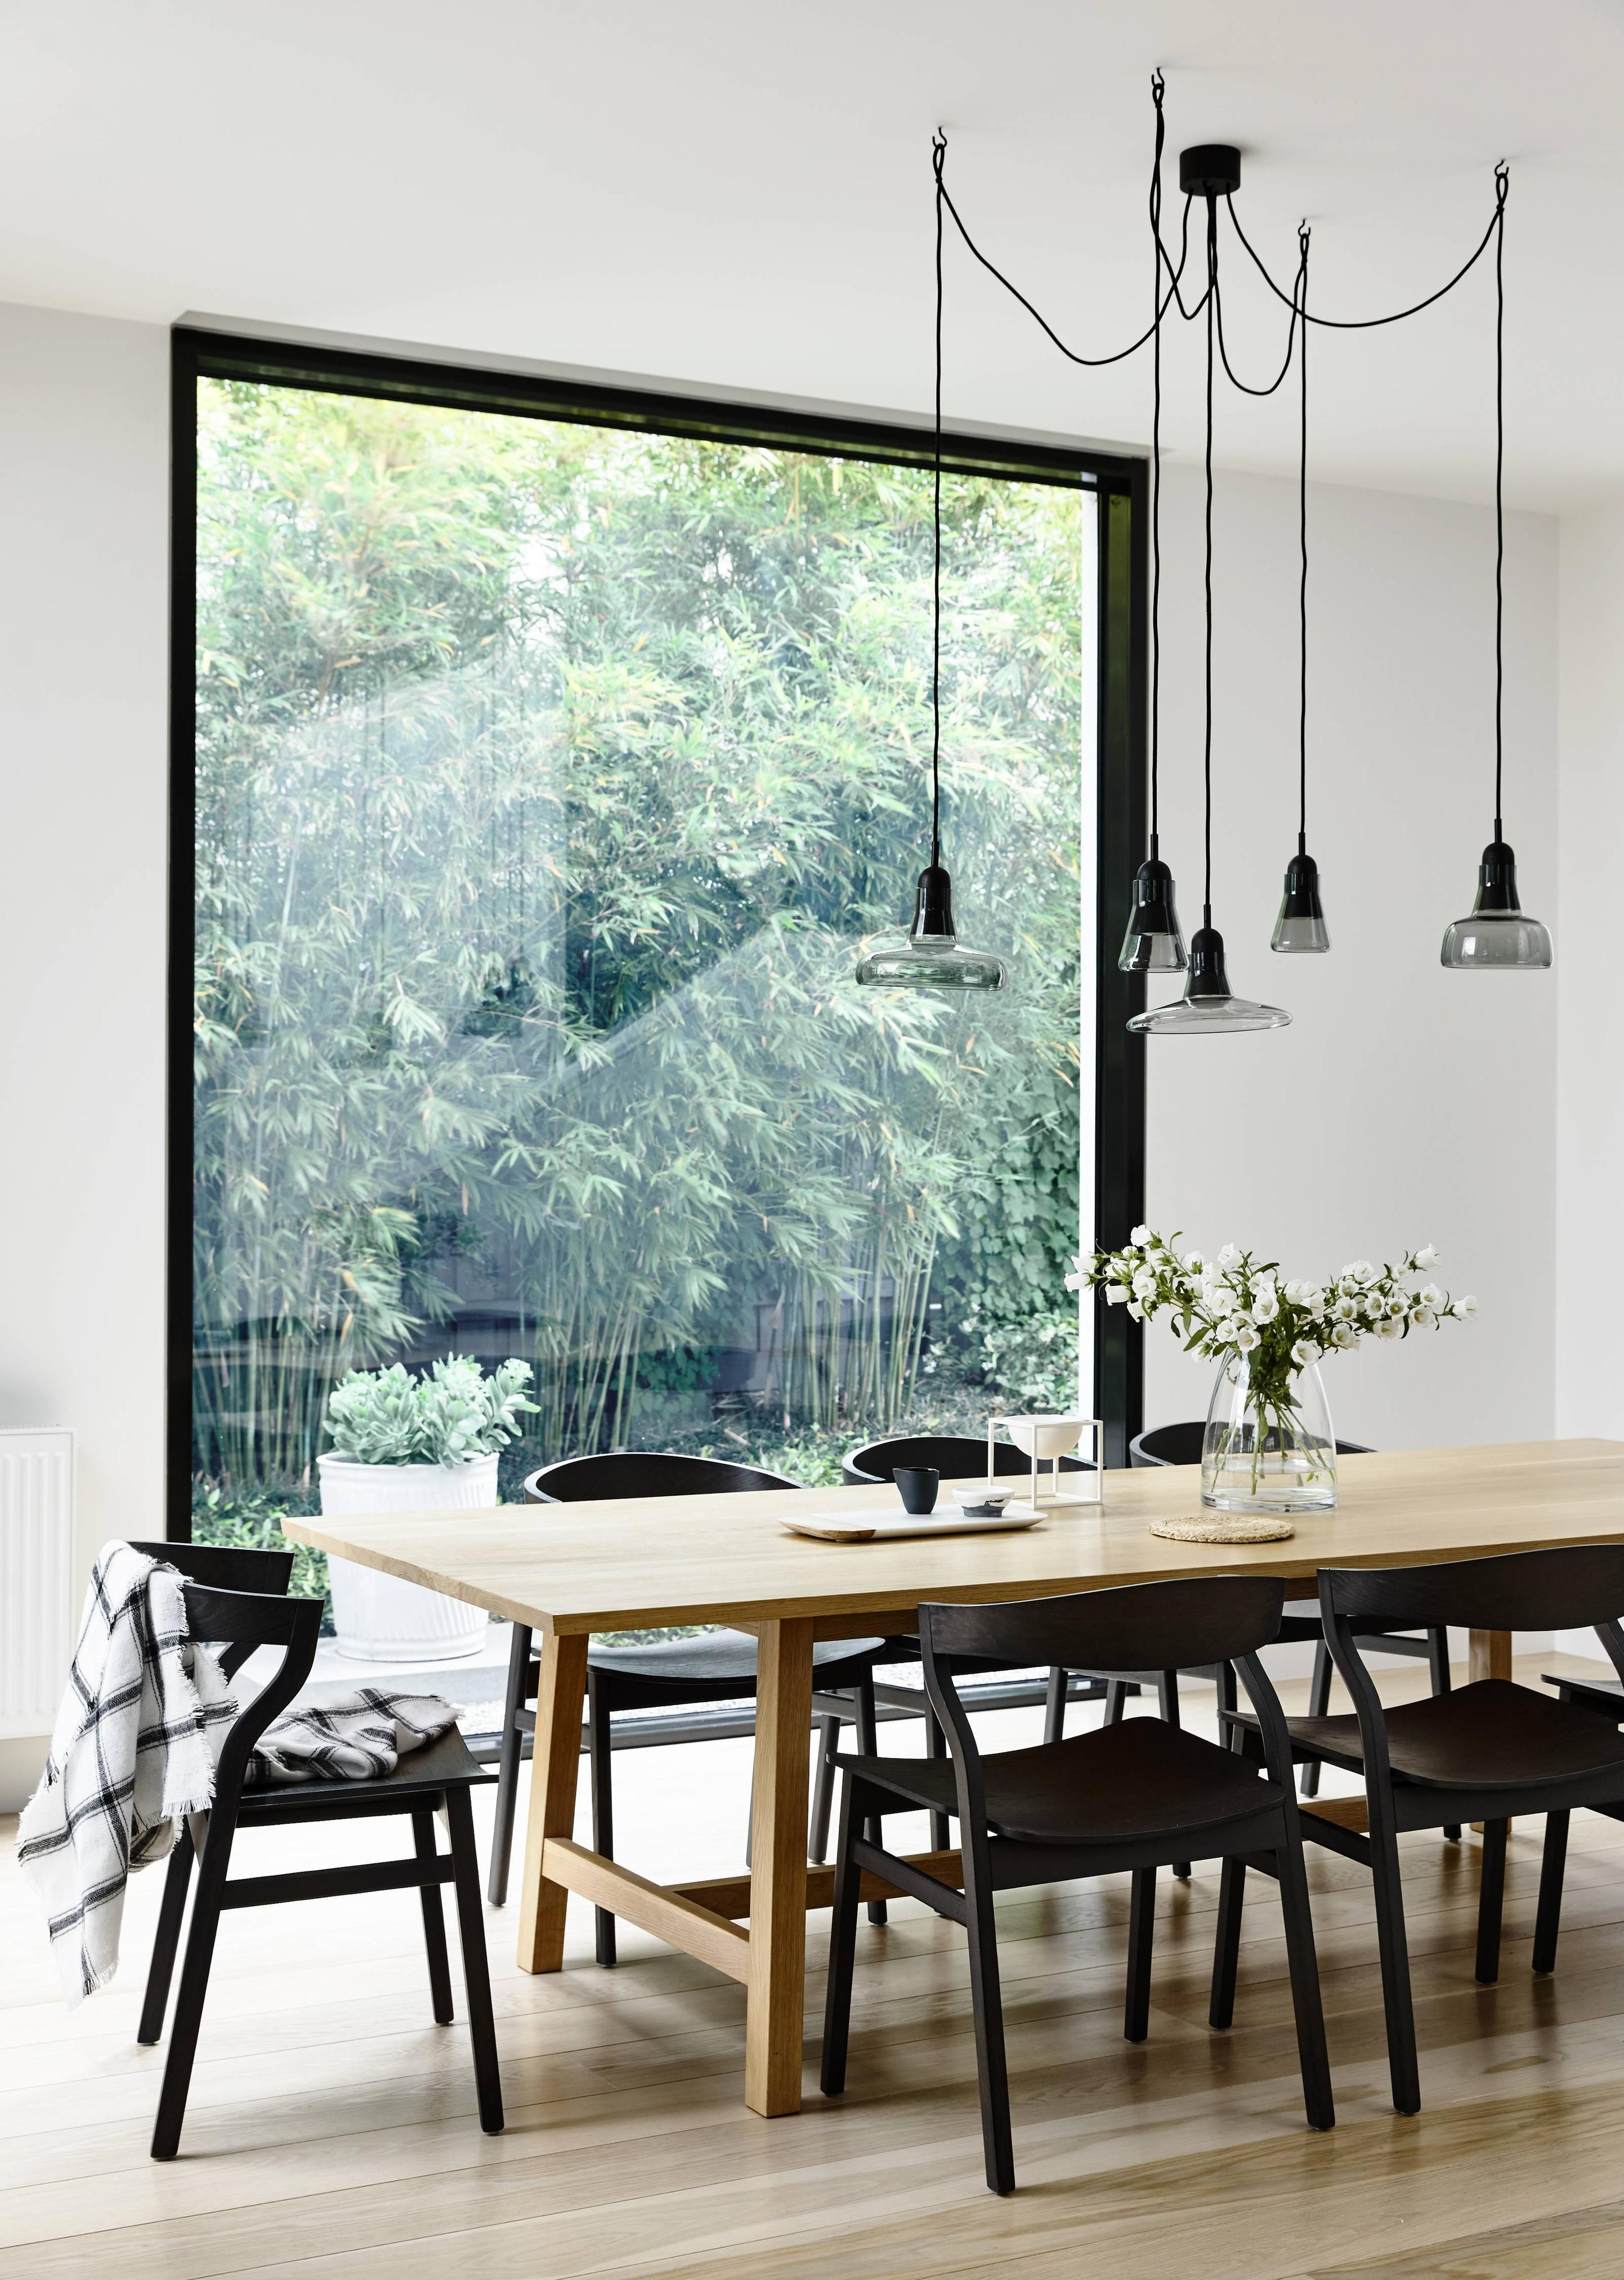 places to borrow tables and chairs oval back dining chair slipcovers latest decor trends ever wondered where they came from 70 cozy scandinavian living room design black